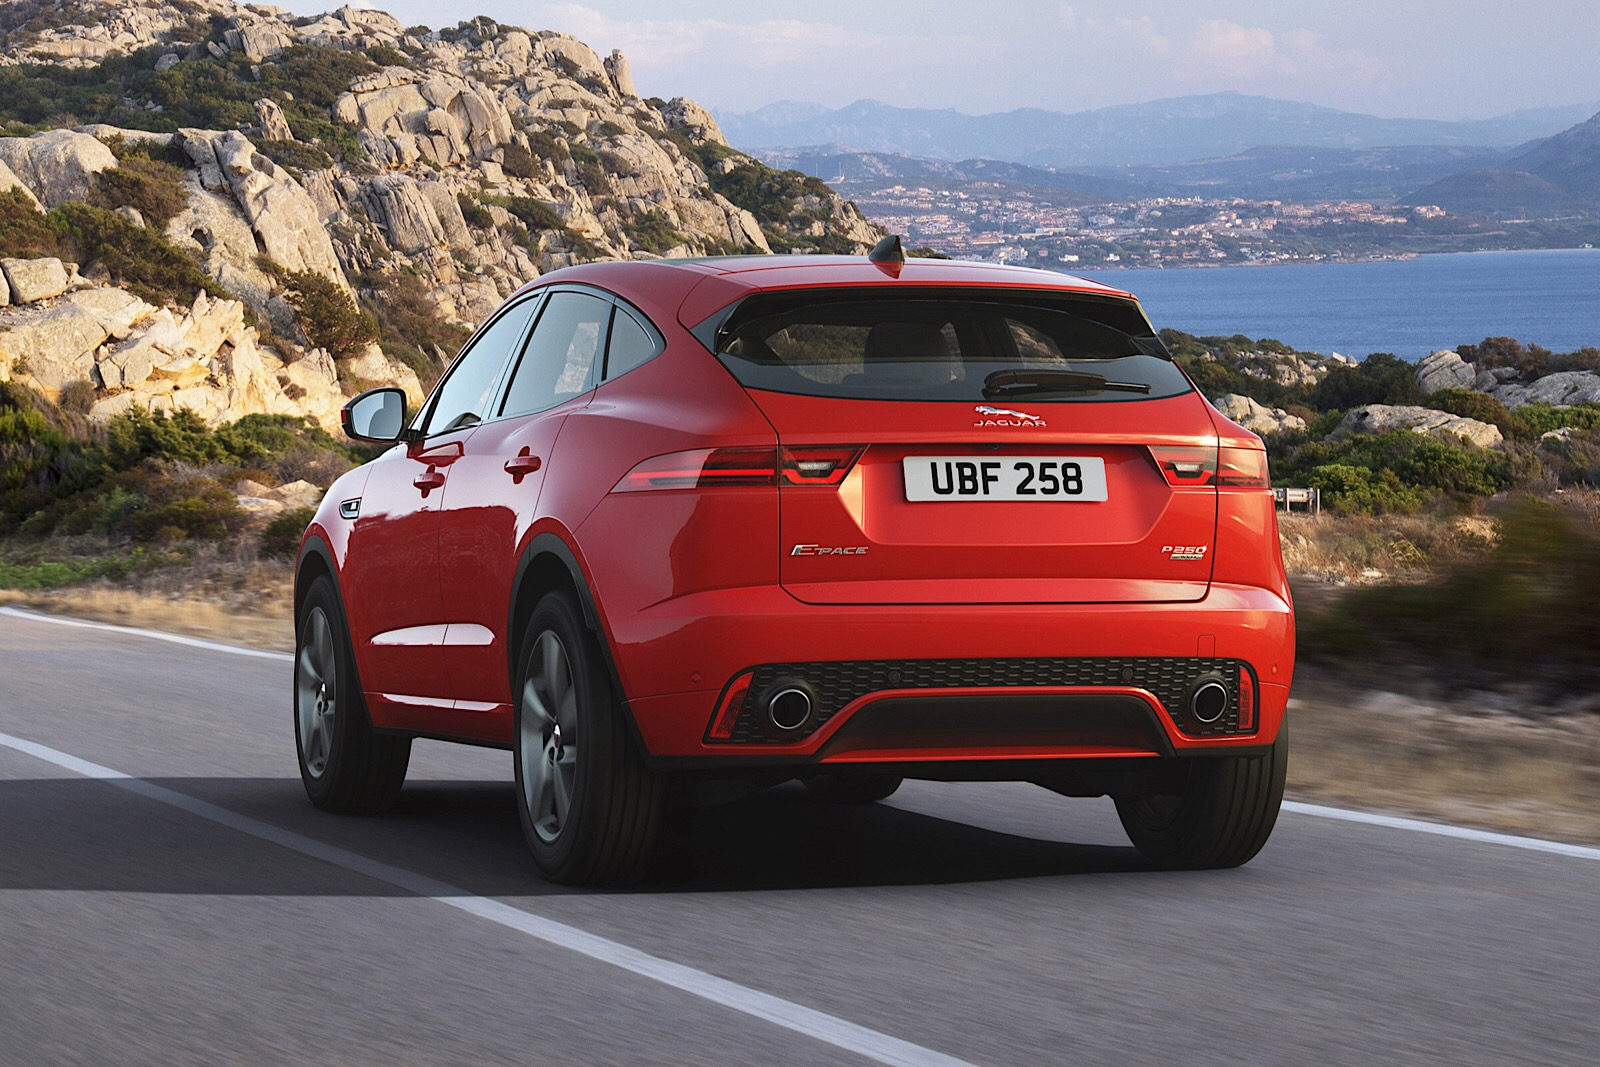 E-Pace Chequered Flag